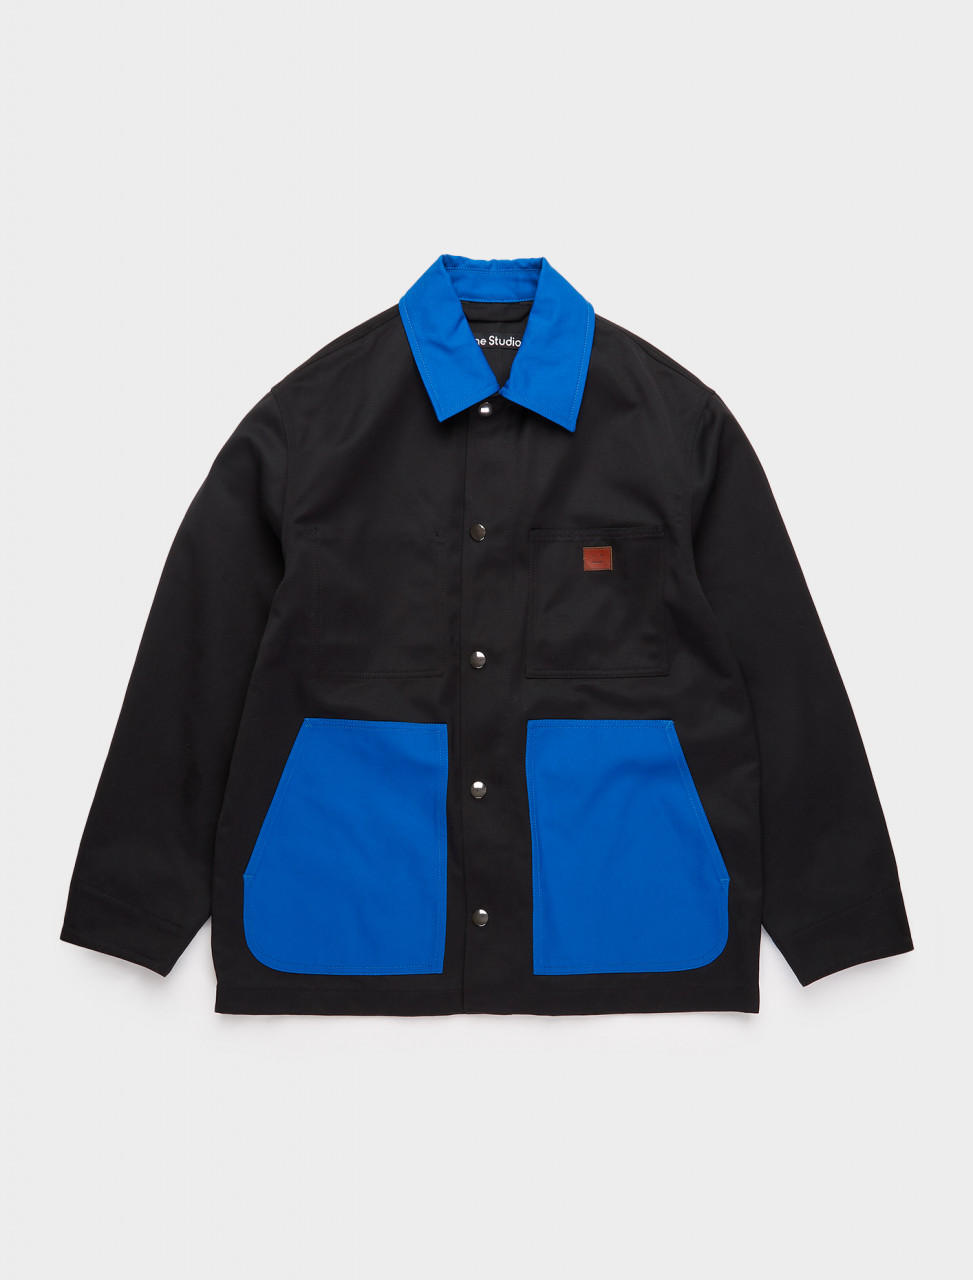 C90060-CLU ACNE STUDIOS WORKWEAR JACKET BLACK BLUE